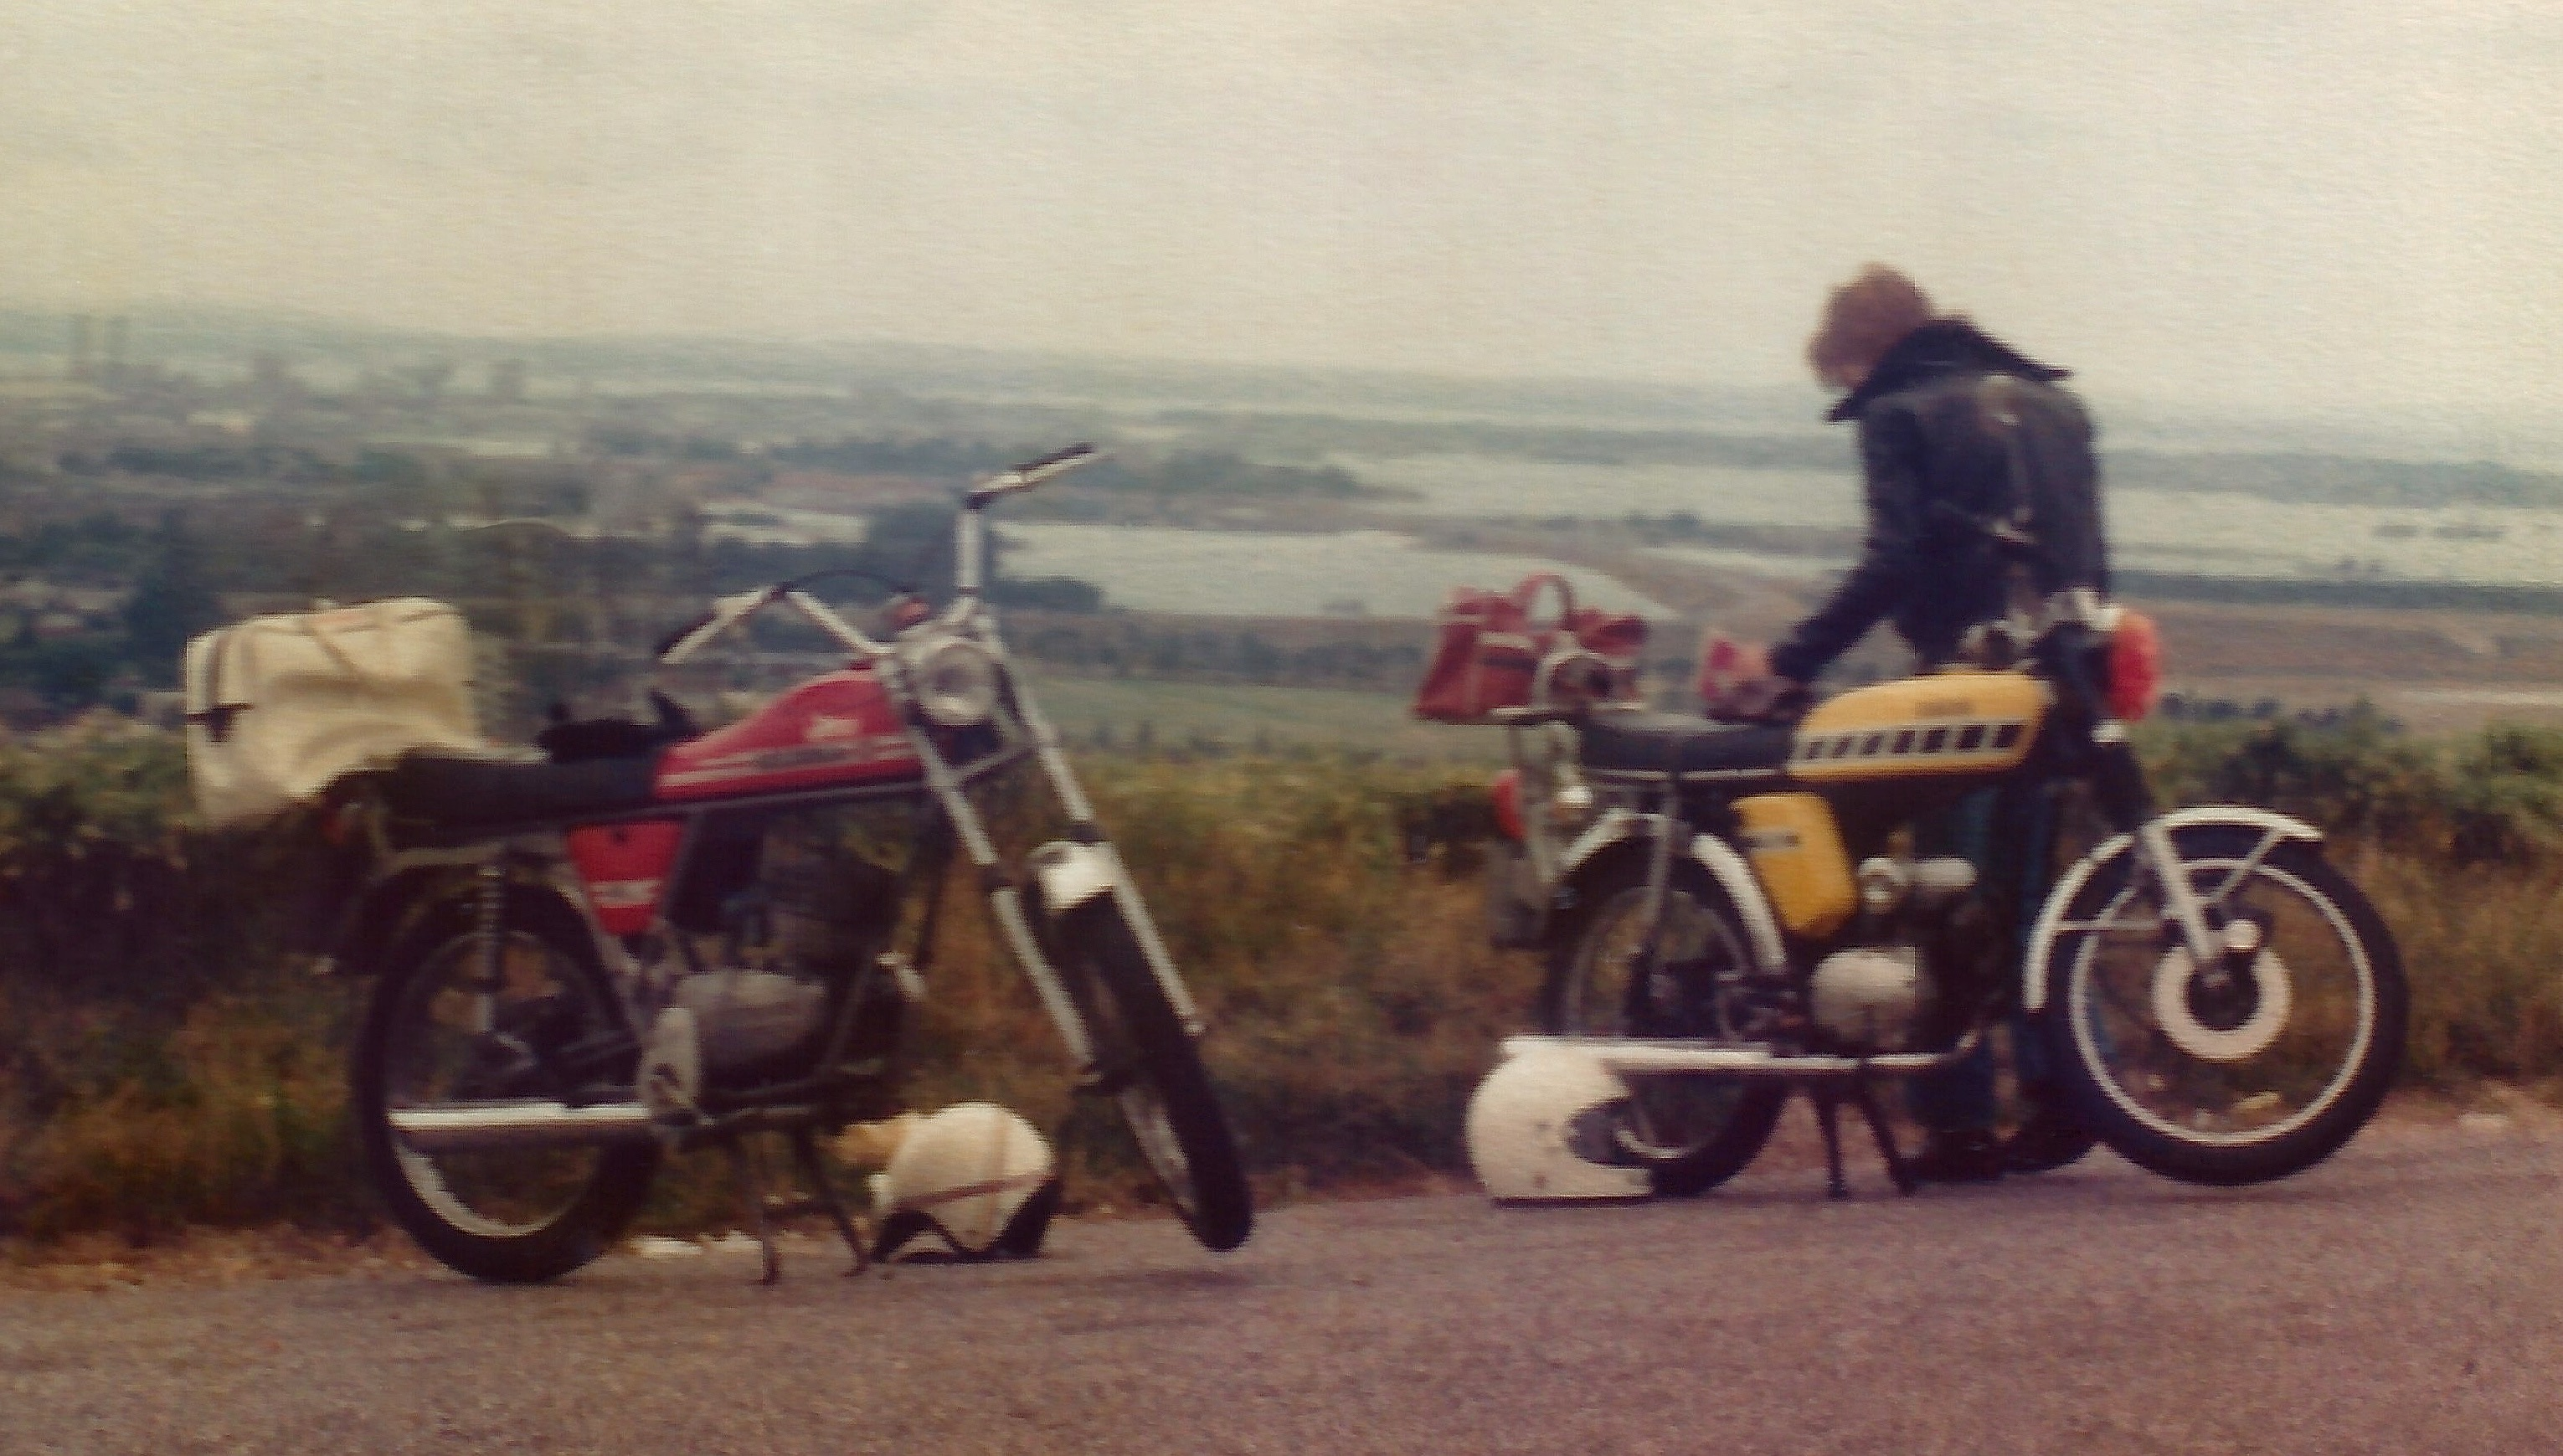 The Gilera 50 moped parked on a hill view next to a yellow Yamaha FS1E with it's owner Jeff